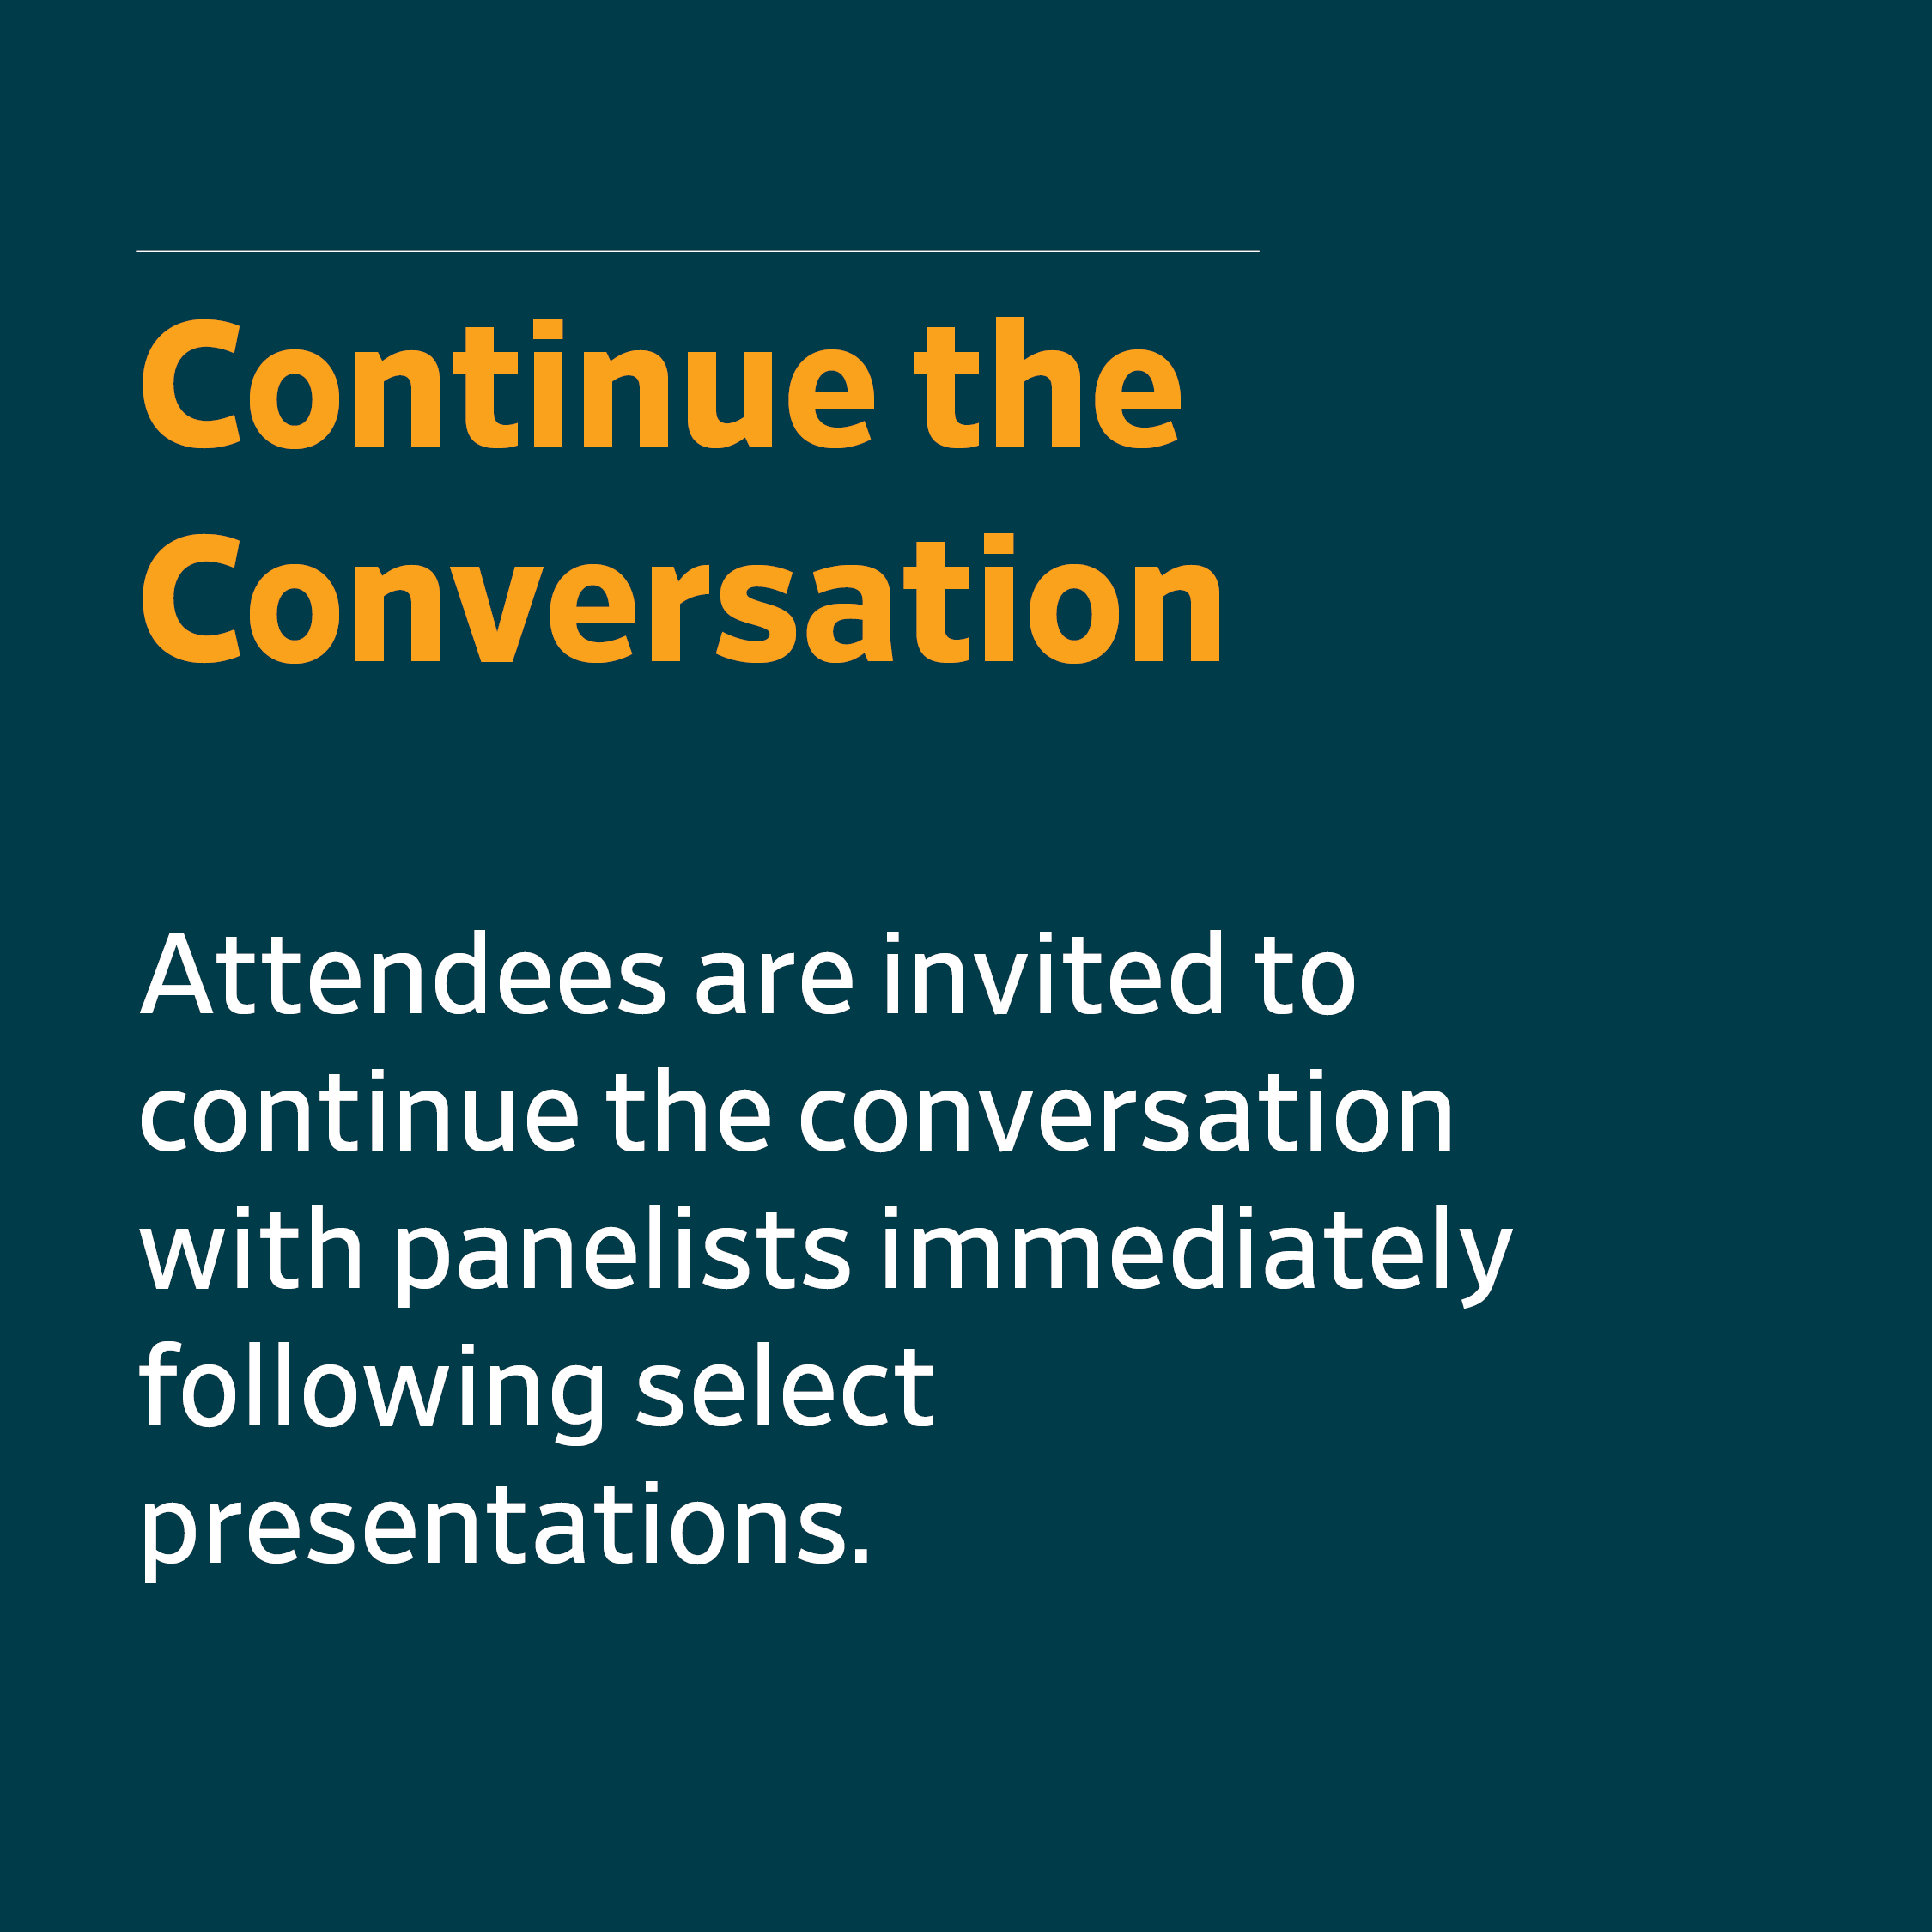 Continue the Conversation - Attendees are invited to continue the conversation with panelists immediately following select presentations.